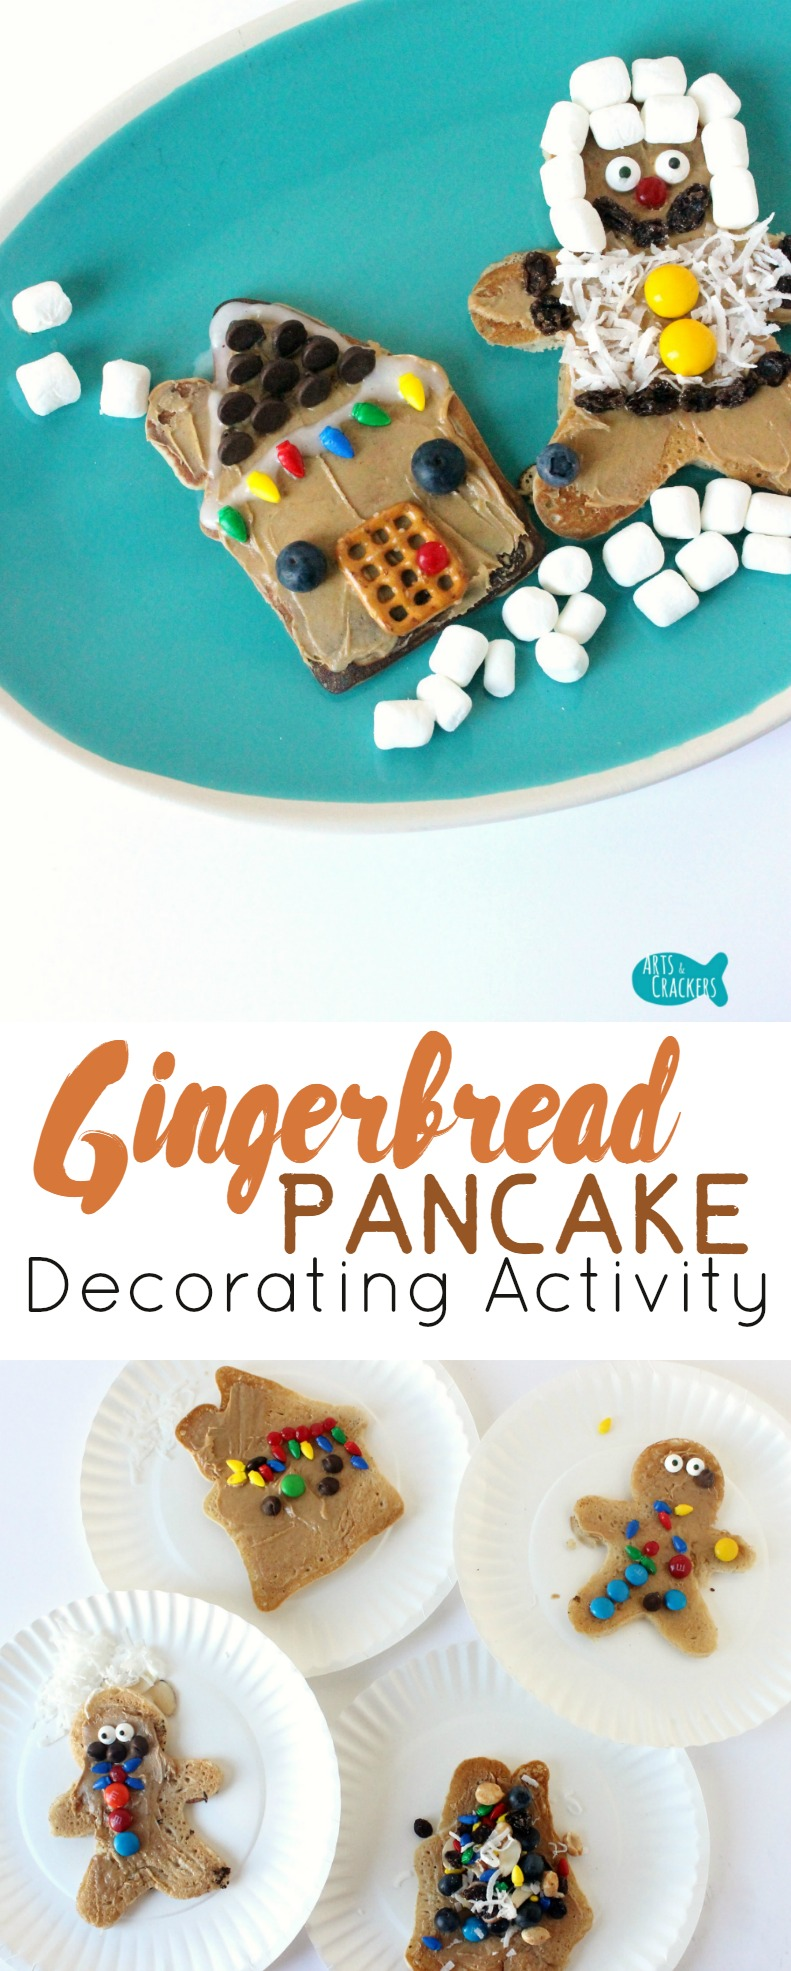 Christmas Breakfast Party Ideas Part - 35: These Gingerbread Pancakes To Decorate Are A Fun Christmas Day Breakfast  Activity. Pancake Party ...